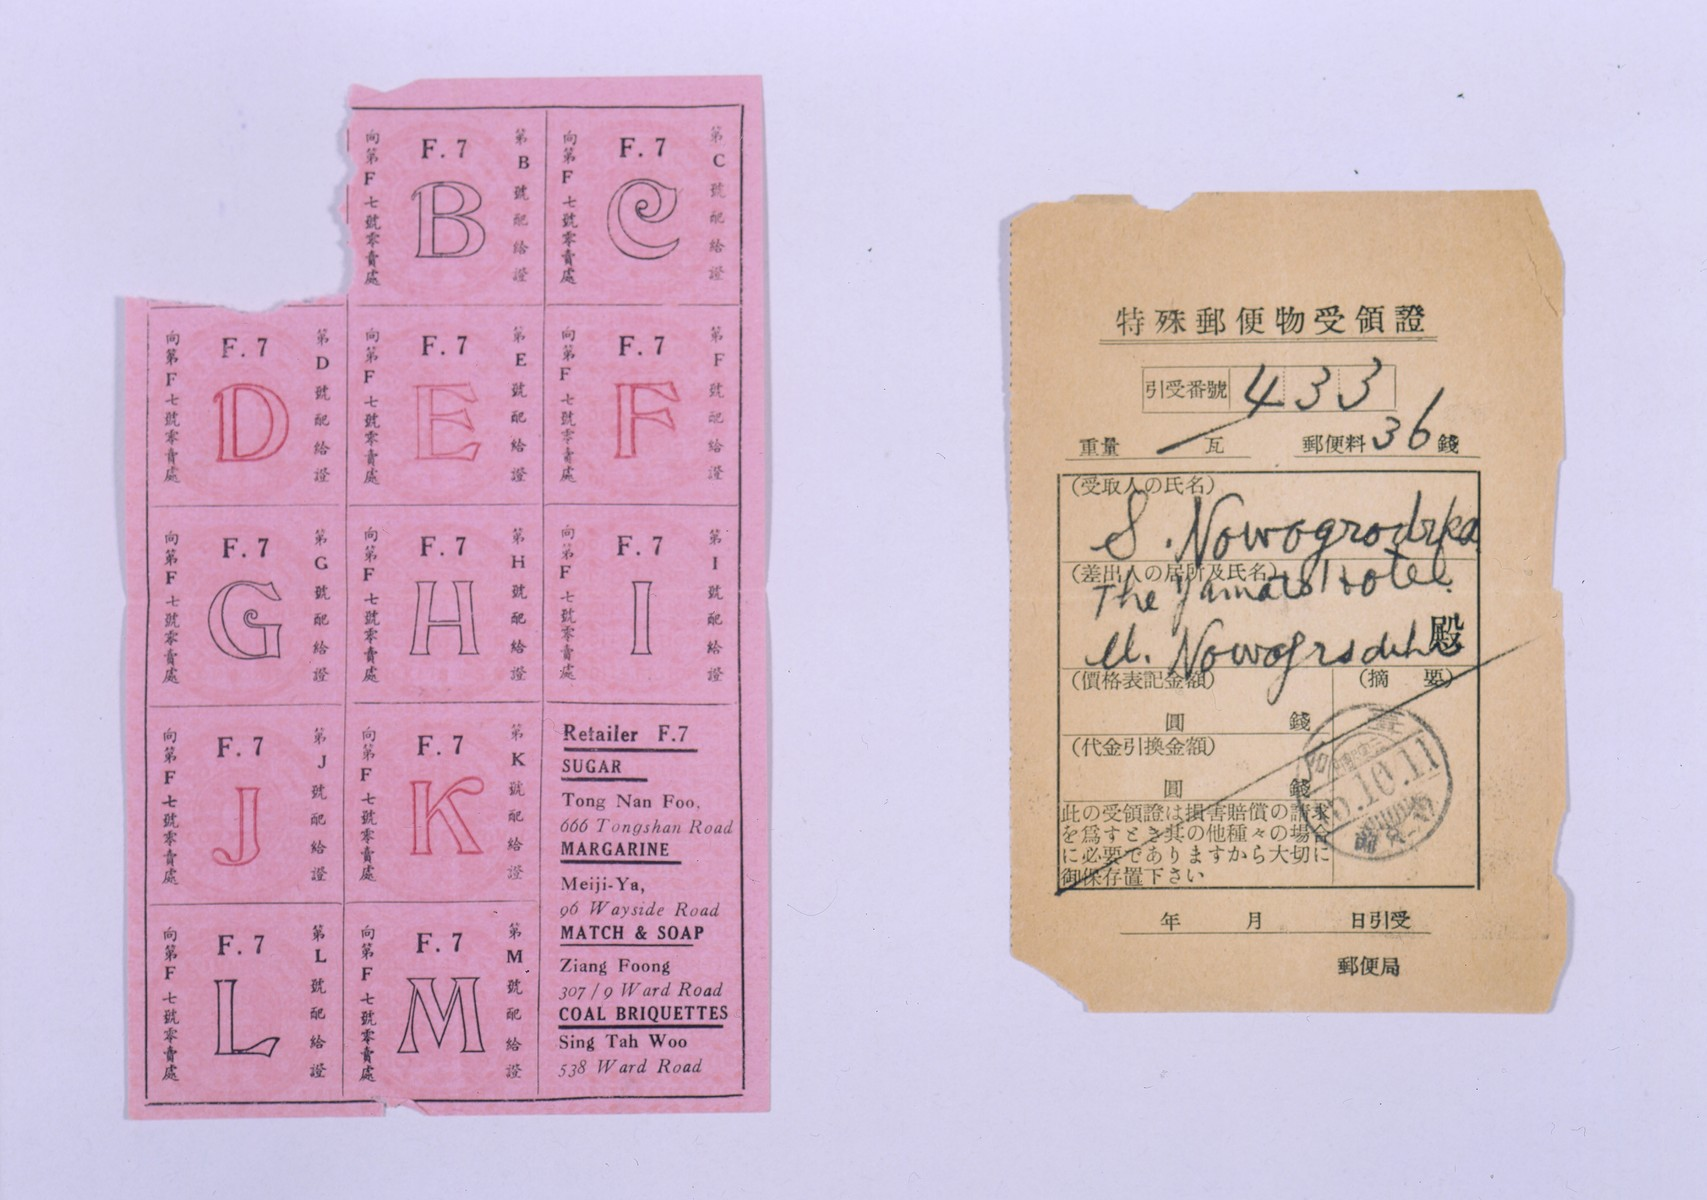 Composite photograph of two documents from the Shanghai ghetto:  1. Ration card for the Shanghai ghetto (left). 2. A receipt for a package sent from Shanghai to the mother of Marcus Nowogrodzki, who stayed behind in Warsaw when Marcus fled to Shanghai (right).